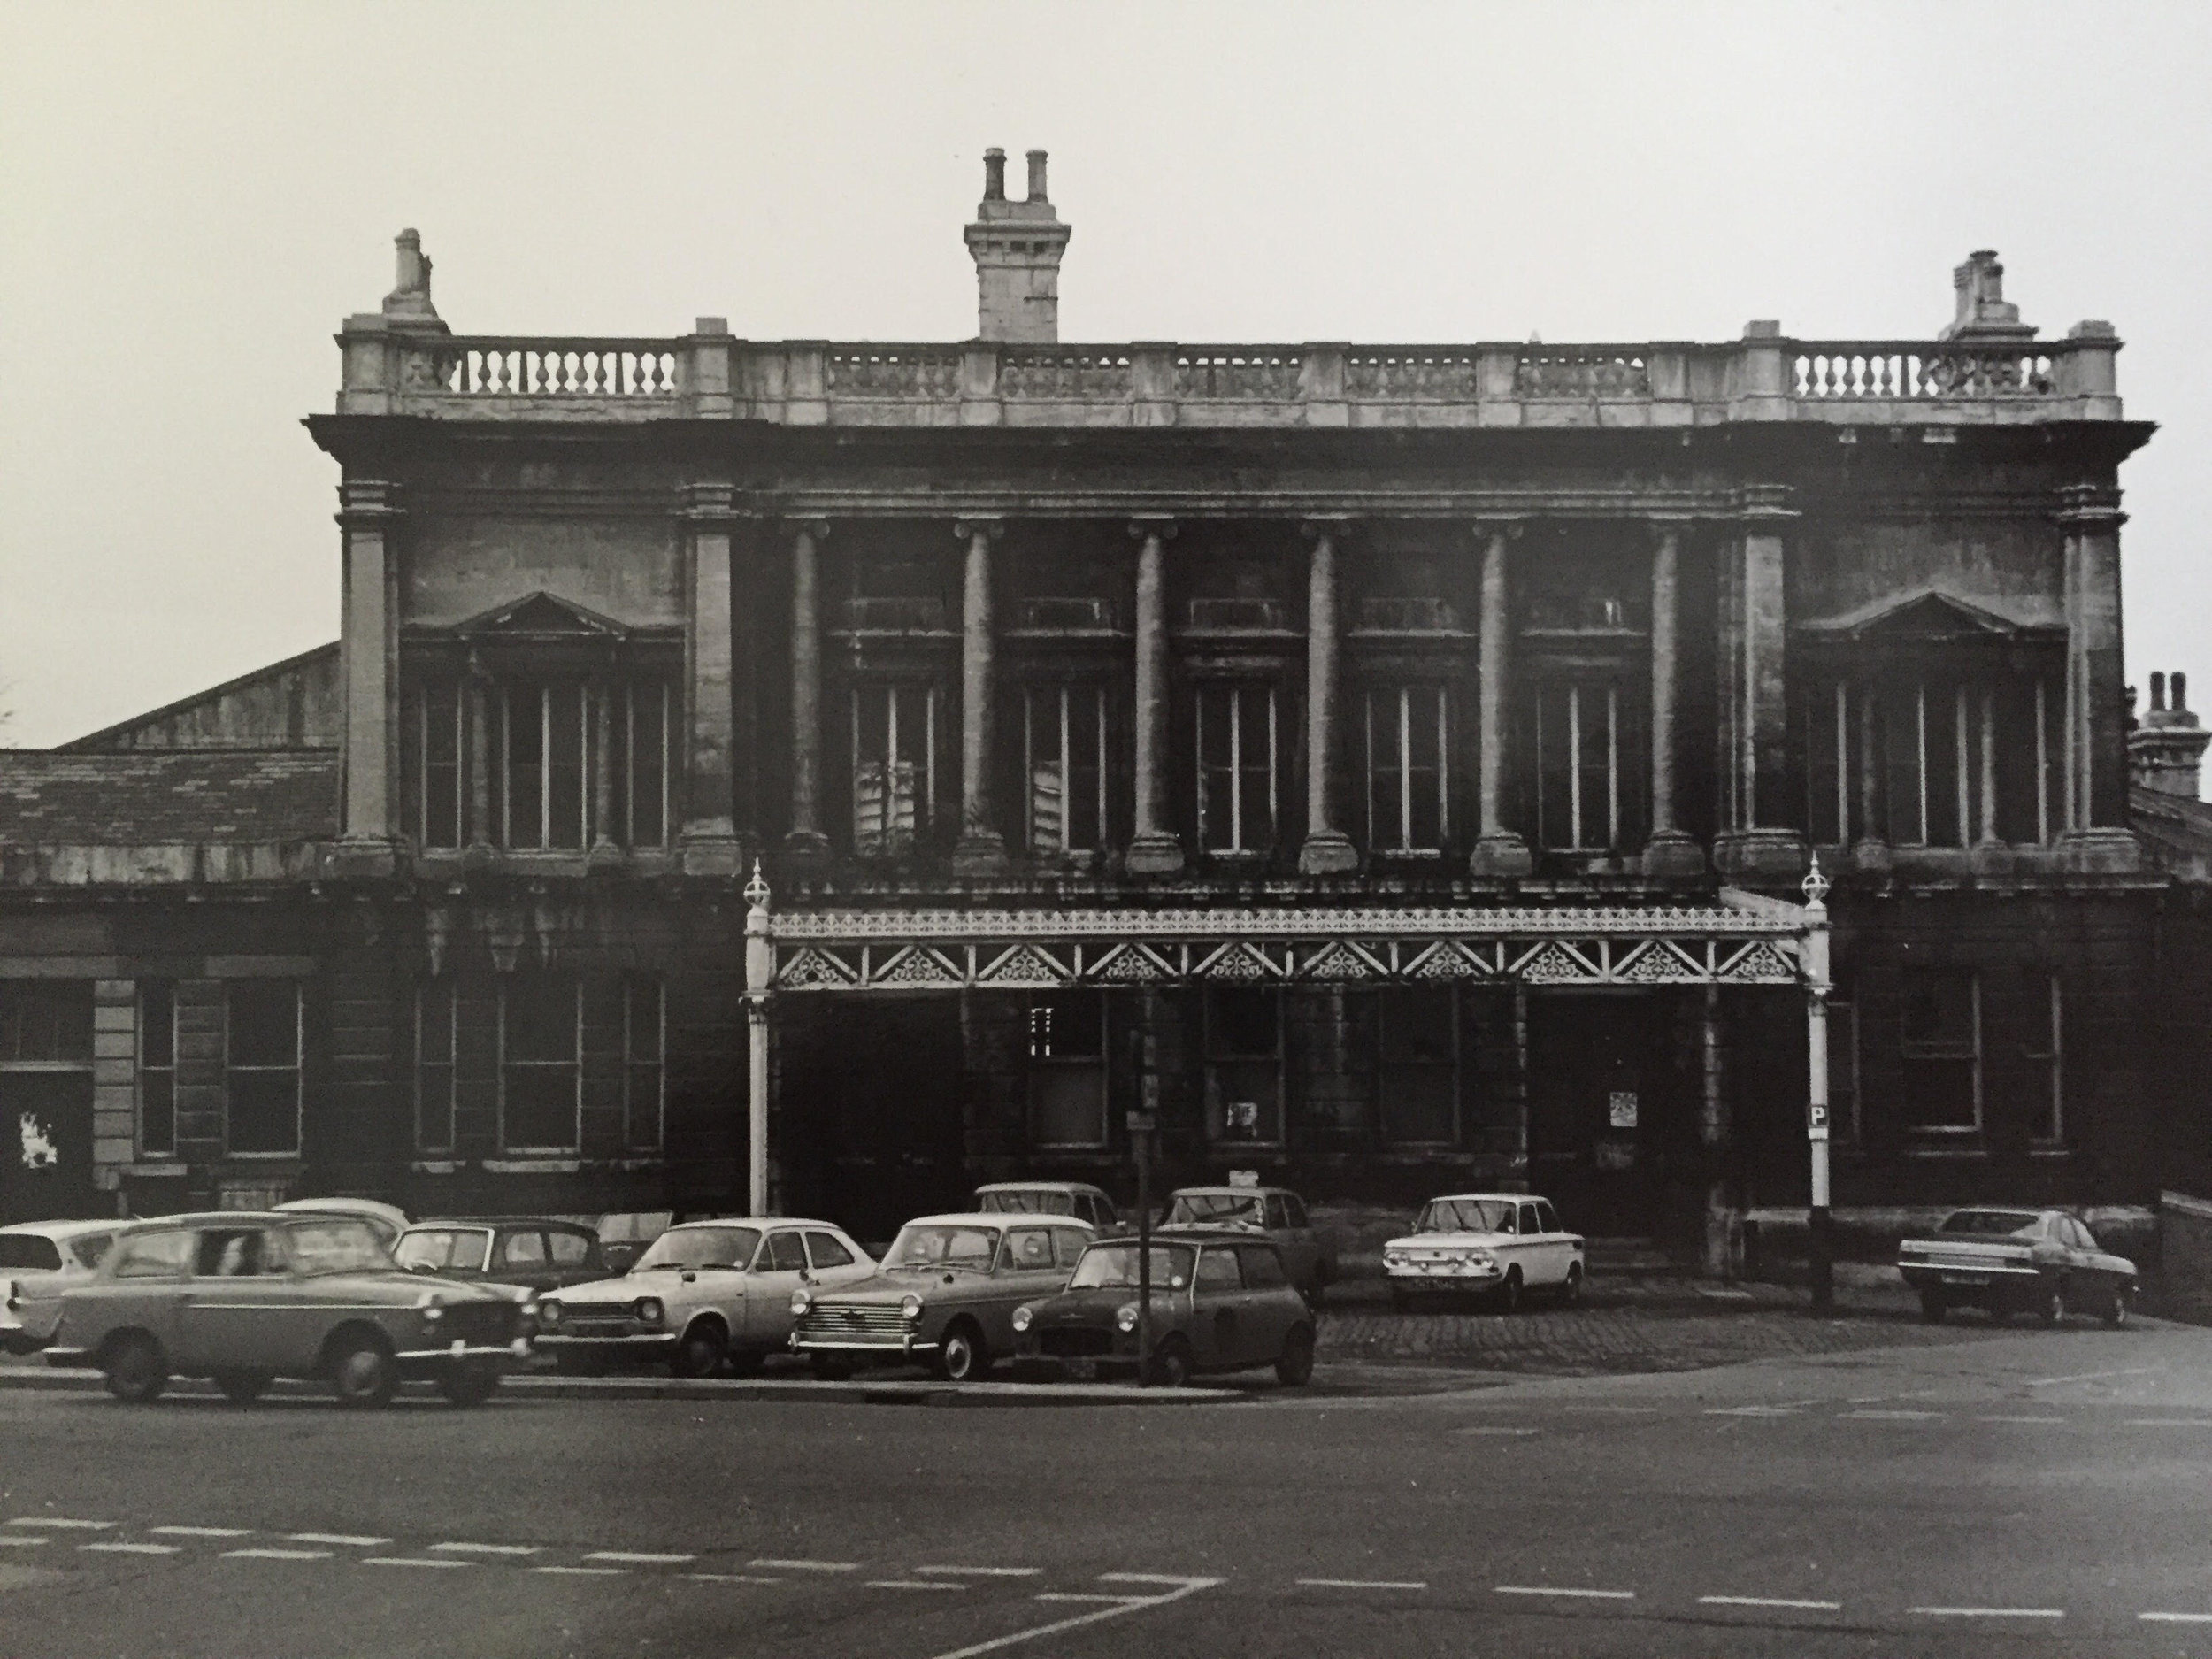 The front of Green Park Station in Bath after the station was decommissioned. The original cobbled front pavings remains today, but the road space has been reconfigured with parking only at the rear of the building in the former station.